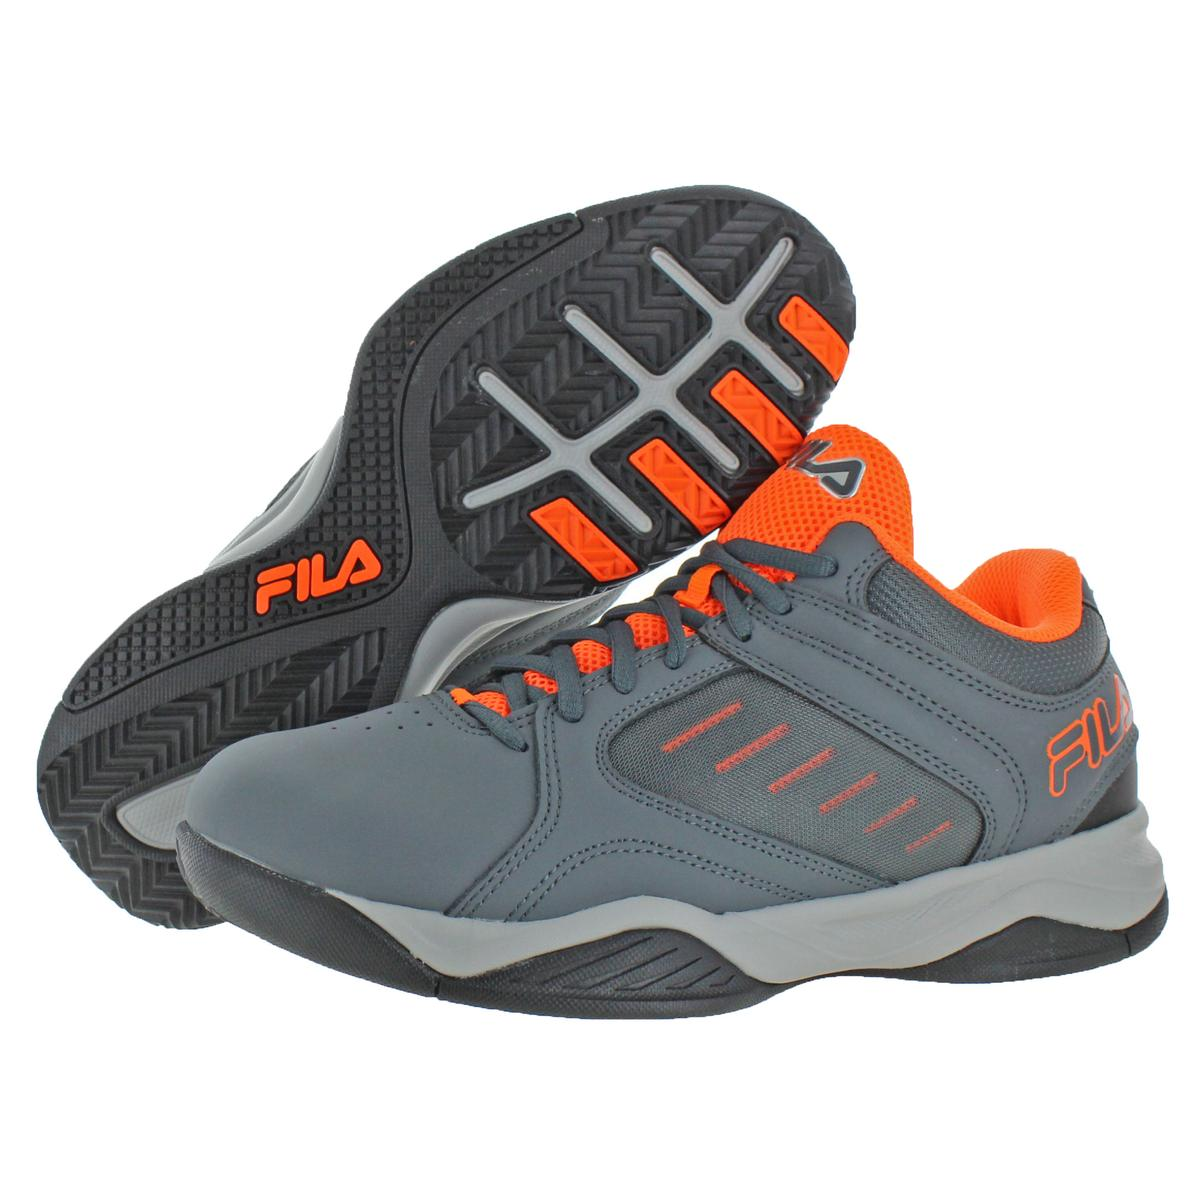 Fila-Men-039-s-Bank-Casual-Lace-Up-Low-Top-Court-Basketball-Athletic-Shoes thumbnail 7